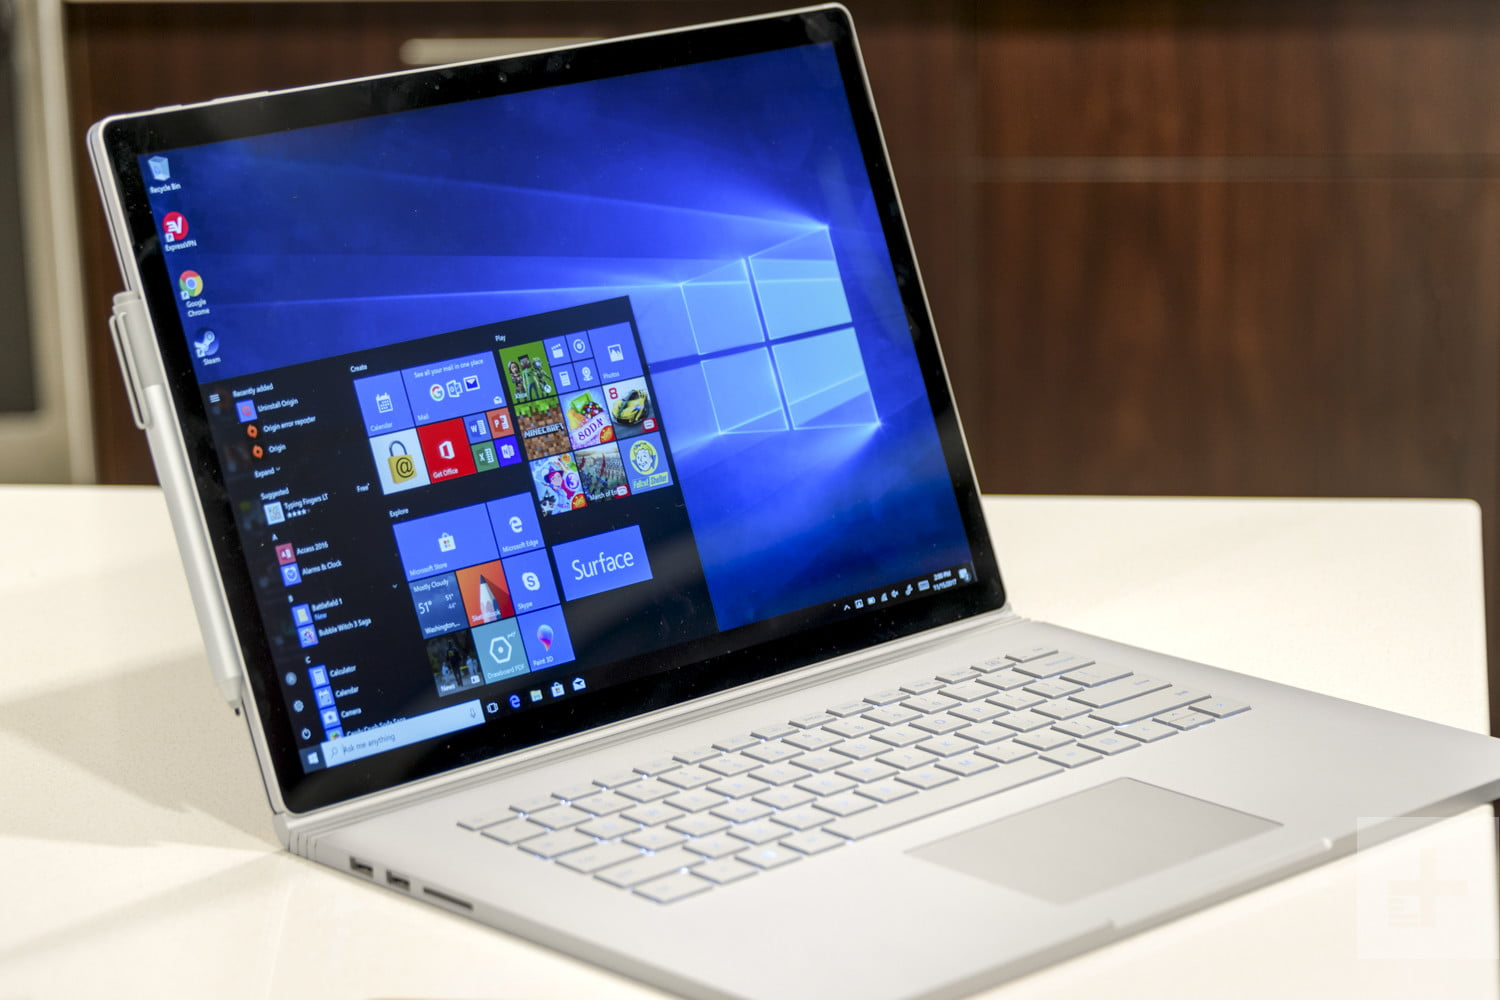 Microsoft Surface Book 2 15 Review: Worth Every Penny